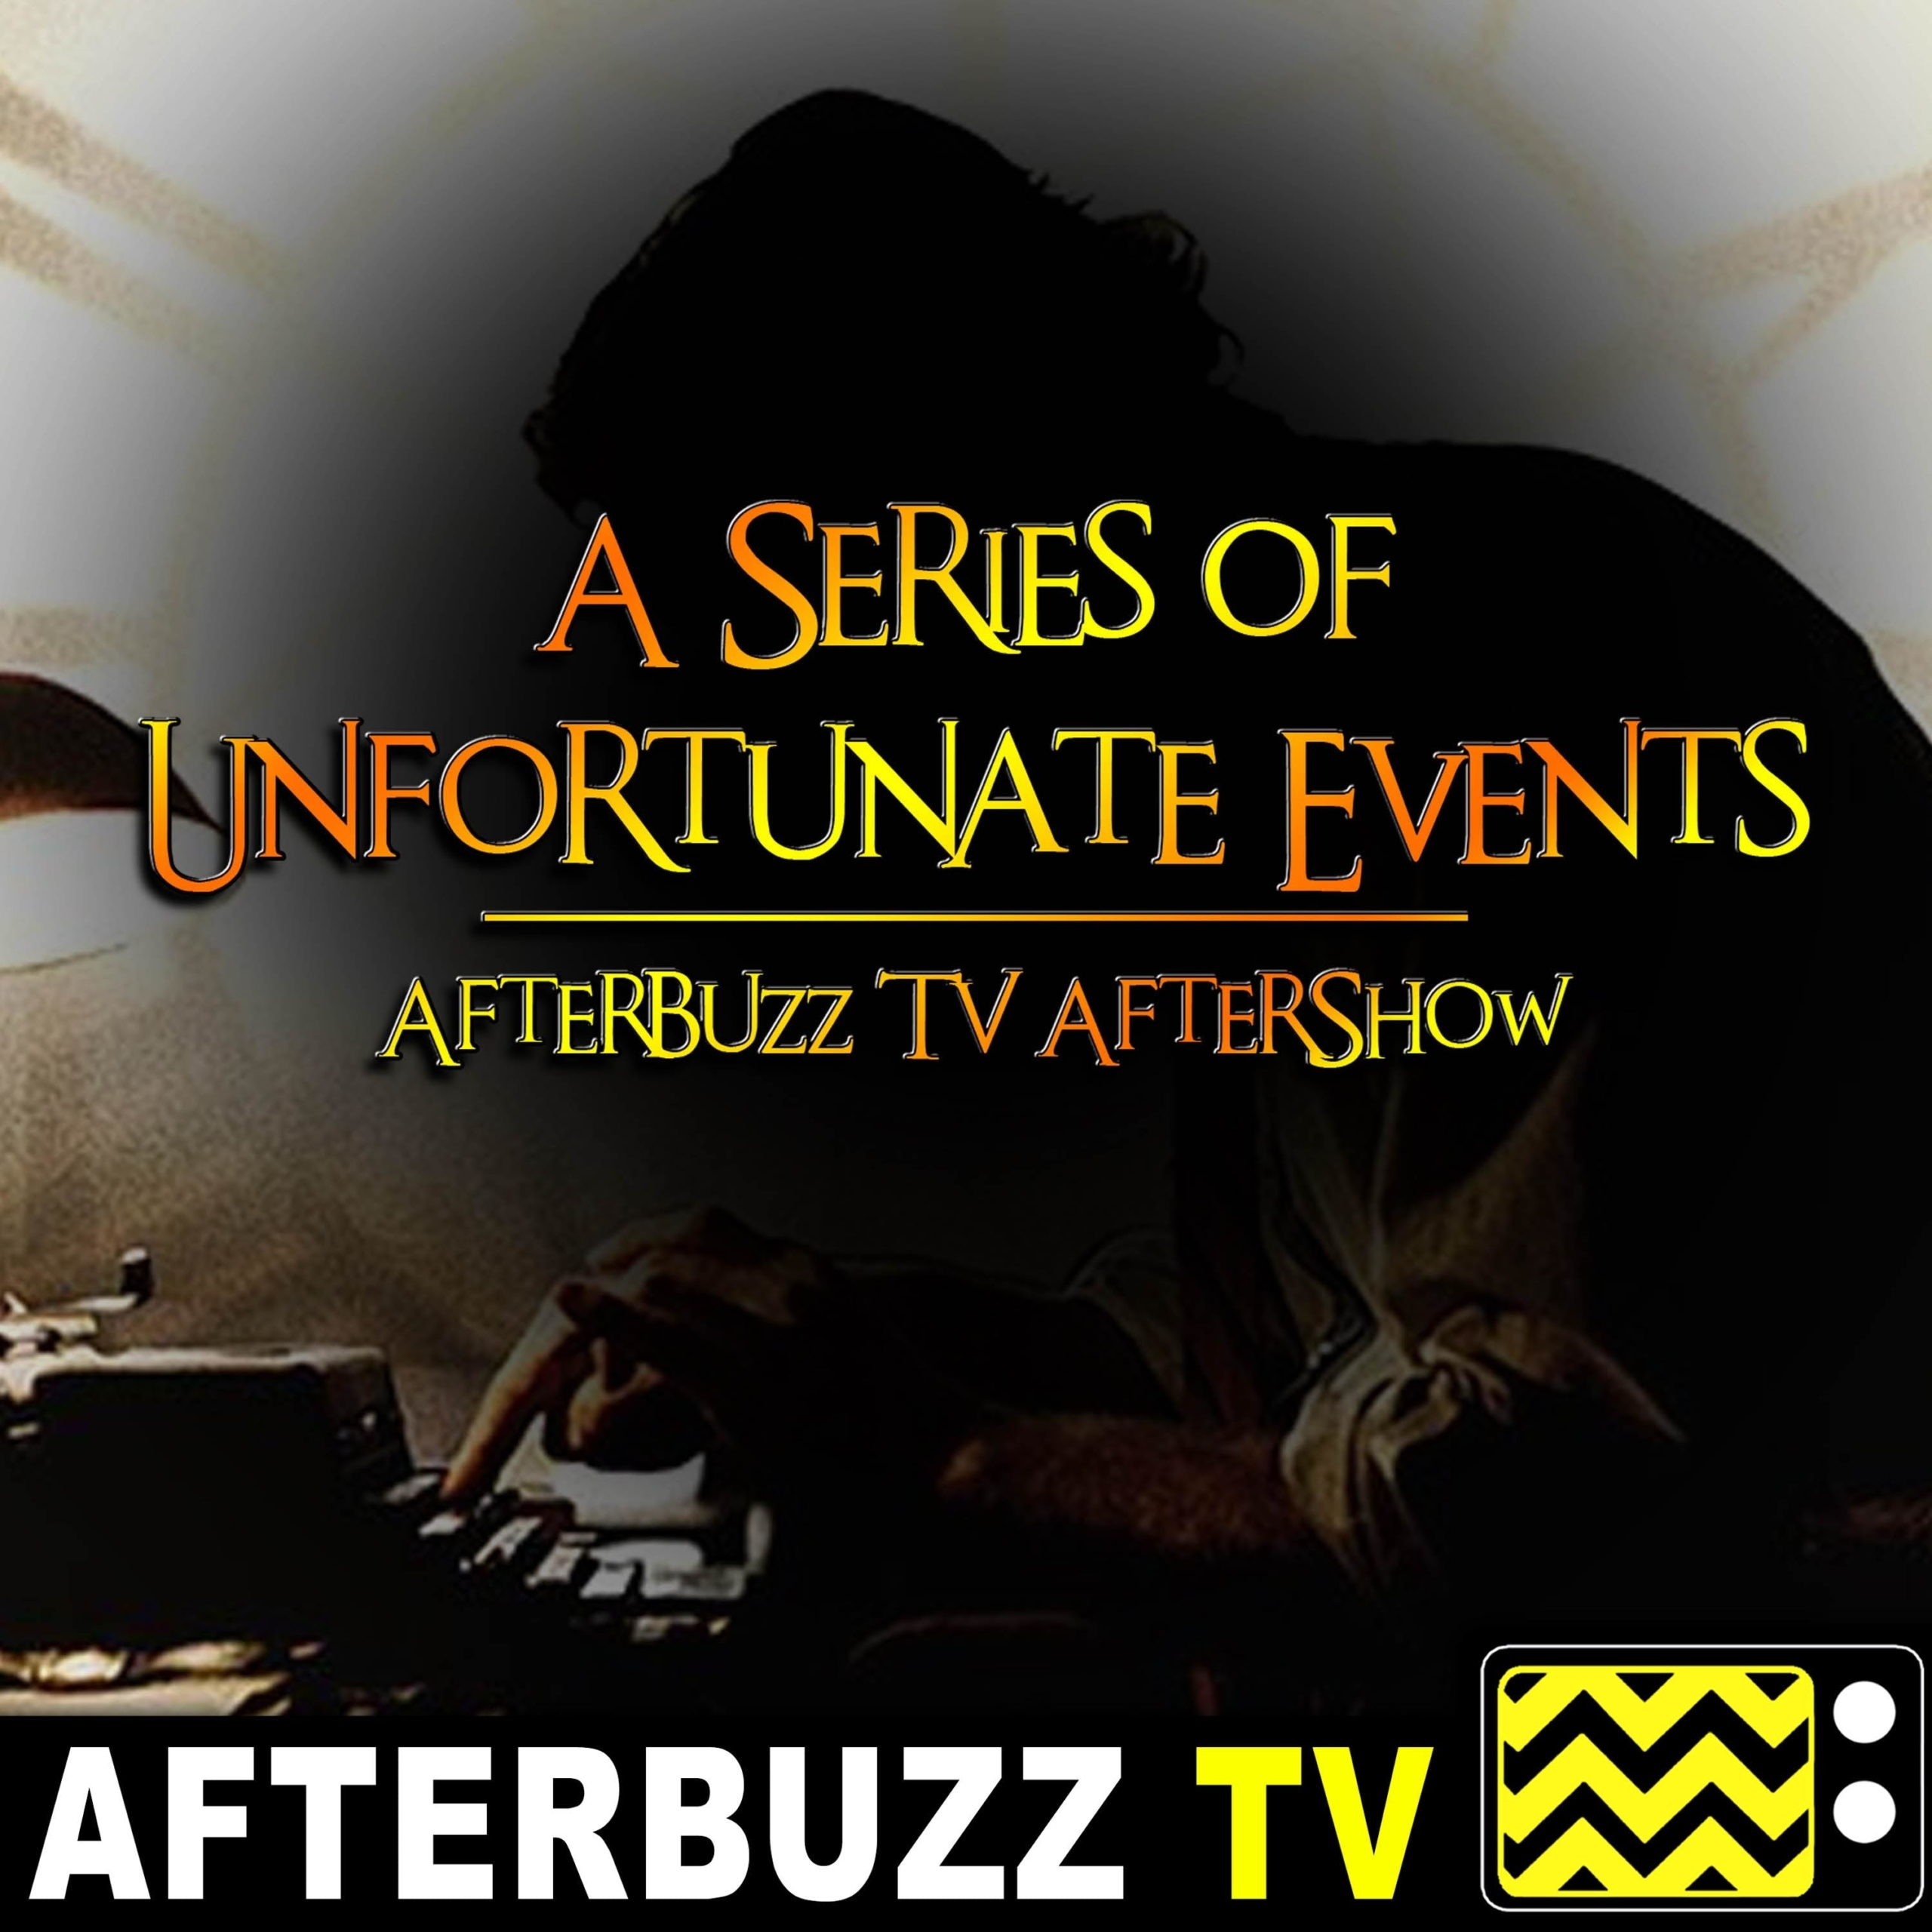 A Series of Unfortunate Events S:1 | The Miserable Mill: Parts 1 & 2 E:7 & E:8 | AfterBuzz TV AfterShow